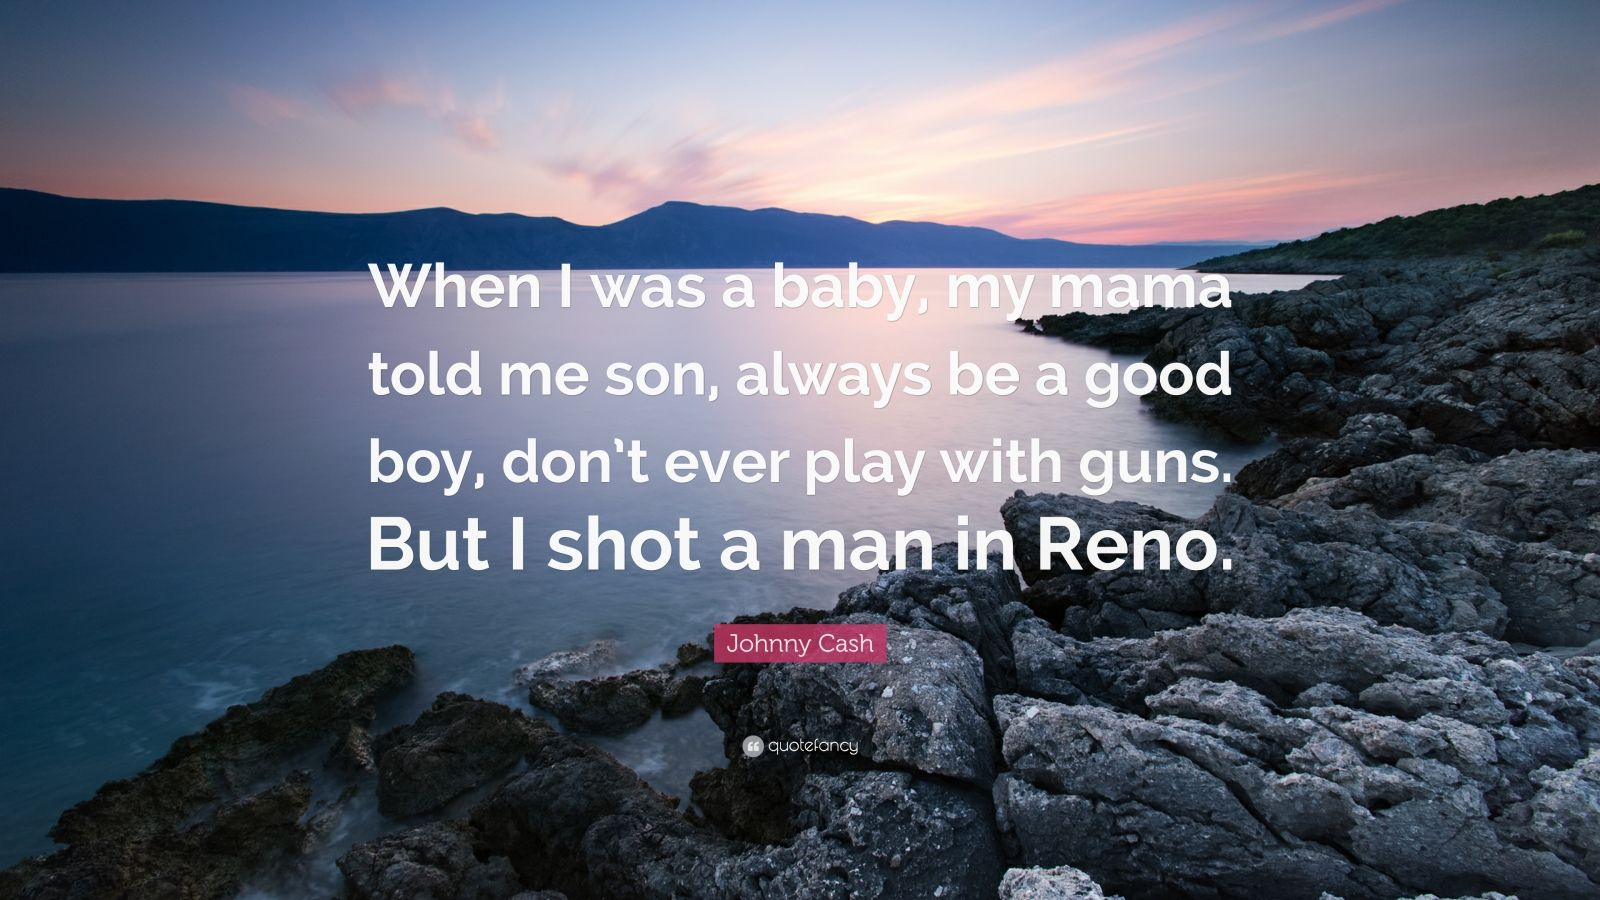 """Johnny Cash Quote: """"When I was a baby, my mama told me son, always be a good boy, don't ever play with guns. But I shot a man in Reno."""""""